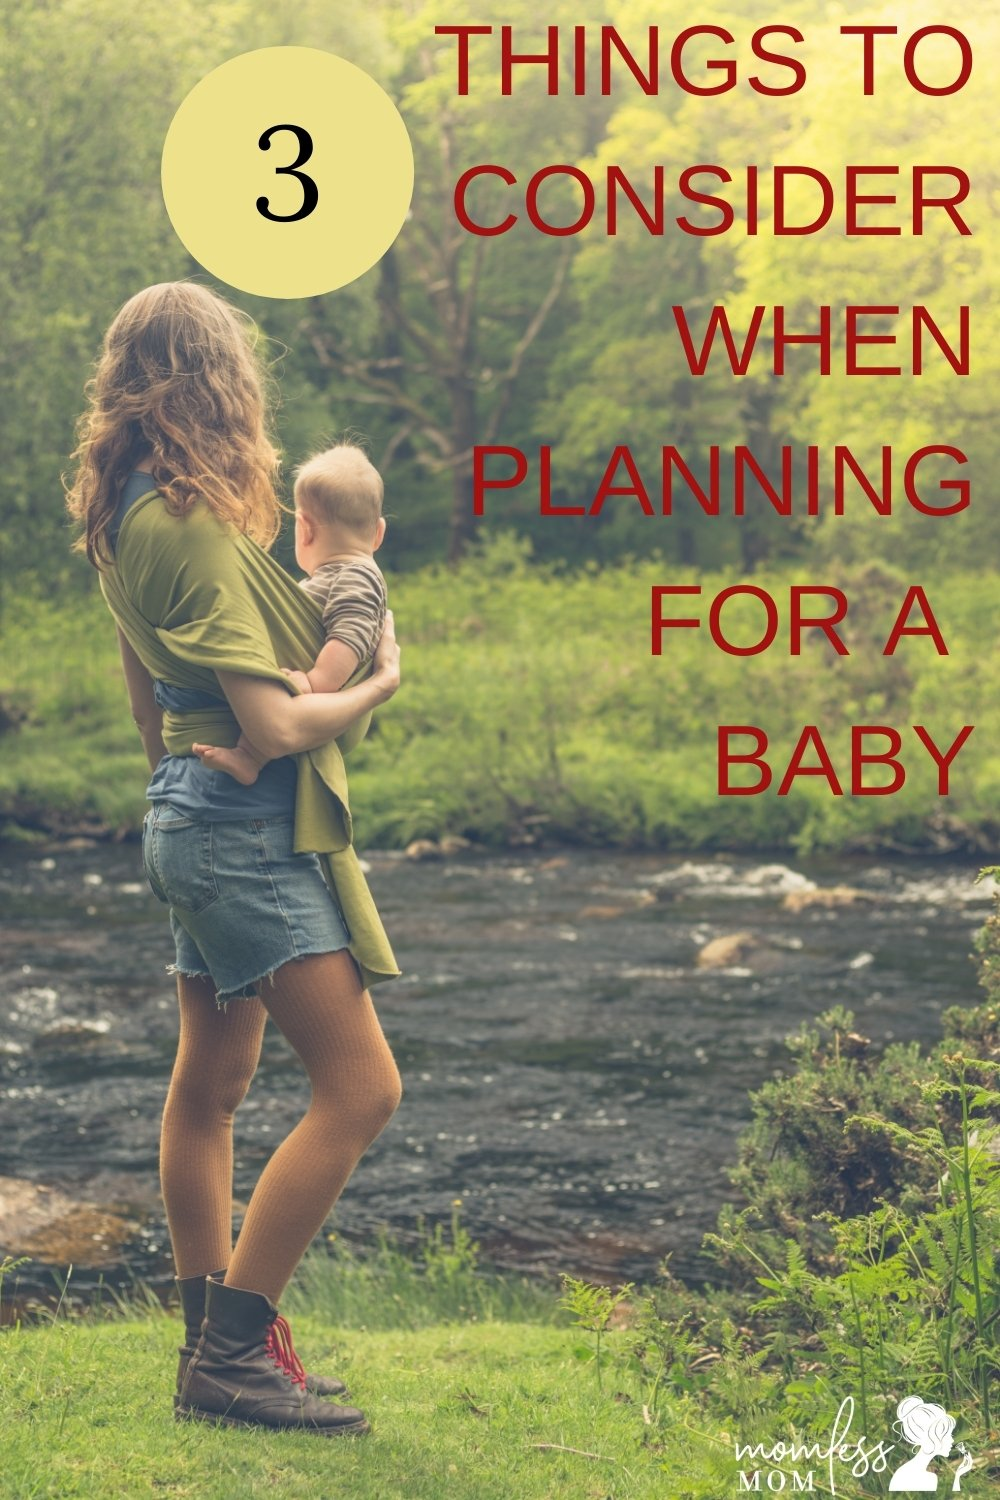 3 Things to Consider when Planning for a Baby